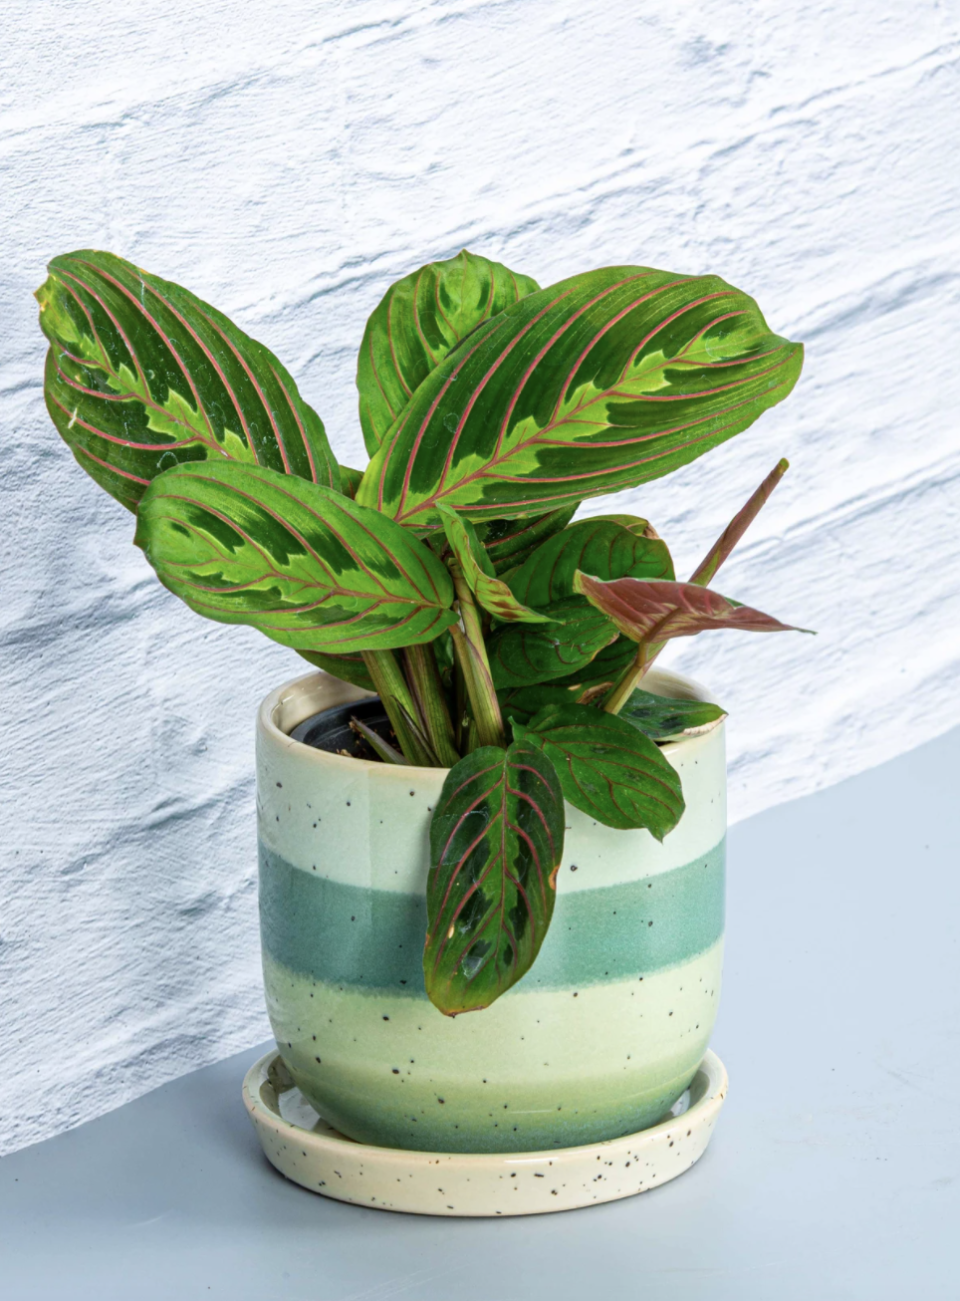 Prayer Plant in striped green and blue pot against blue background